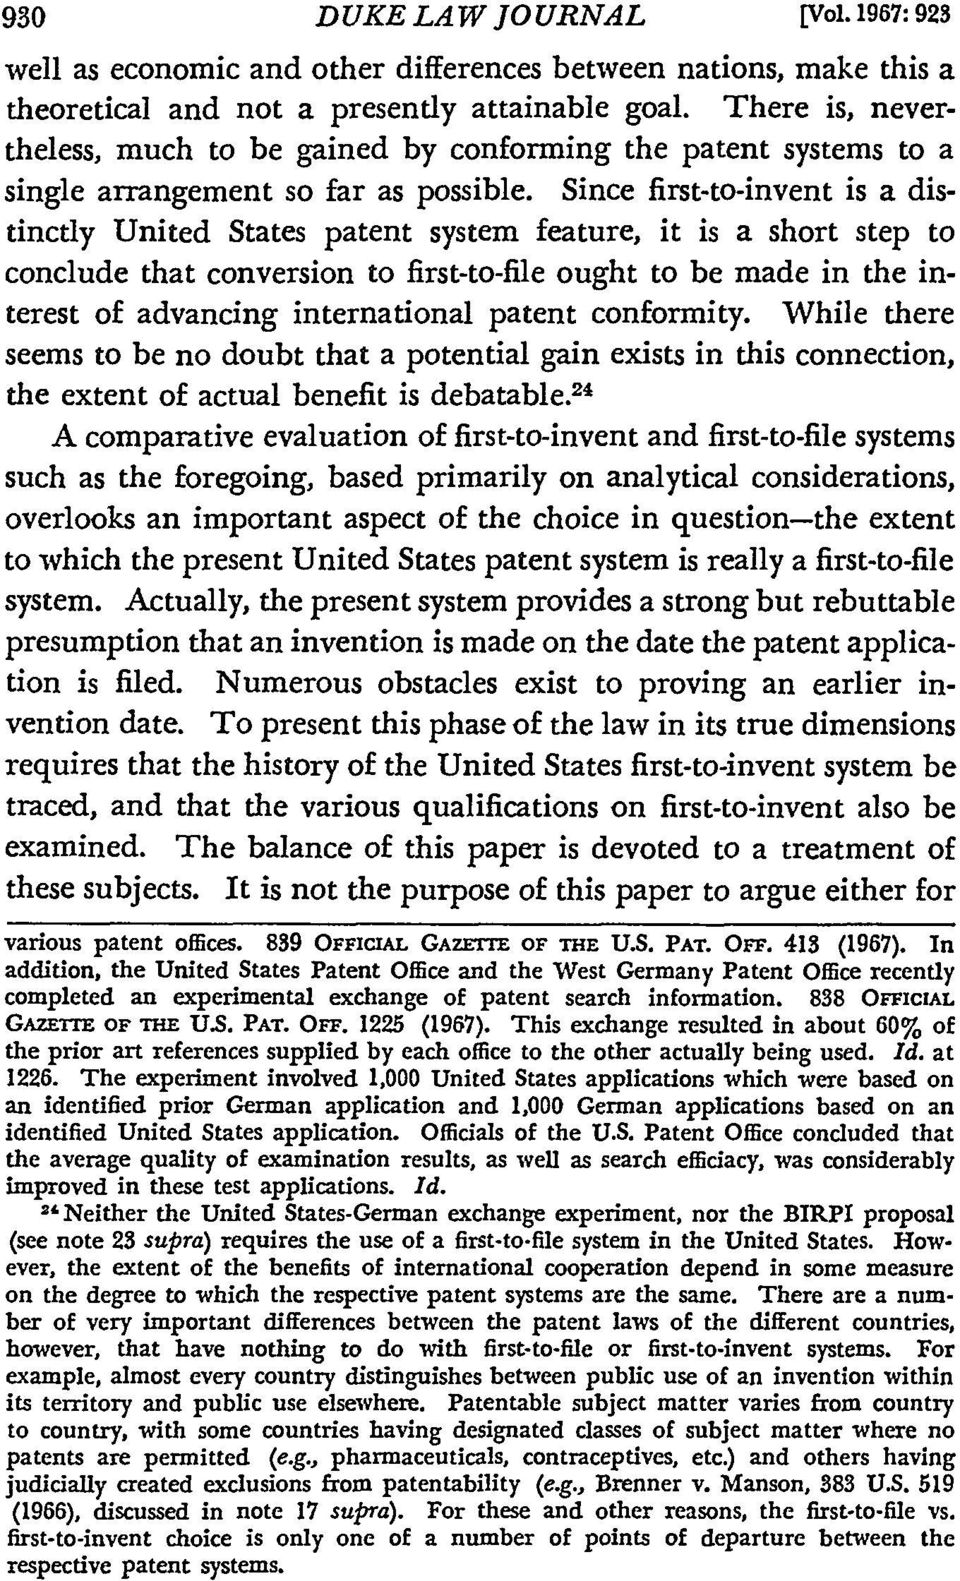 Since first-to-invent is a distinctly United States patent system feature, it is a short step to conclude that conversion to first-to-file ought to be made in the interest of advancing international